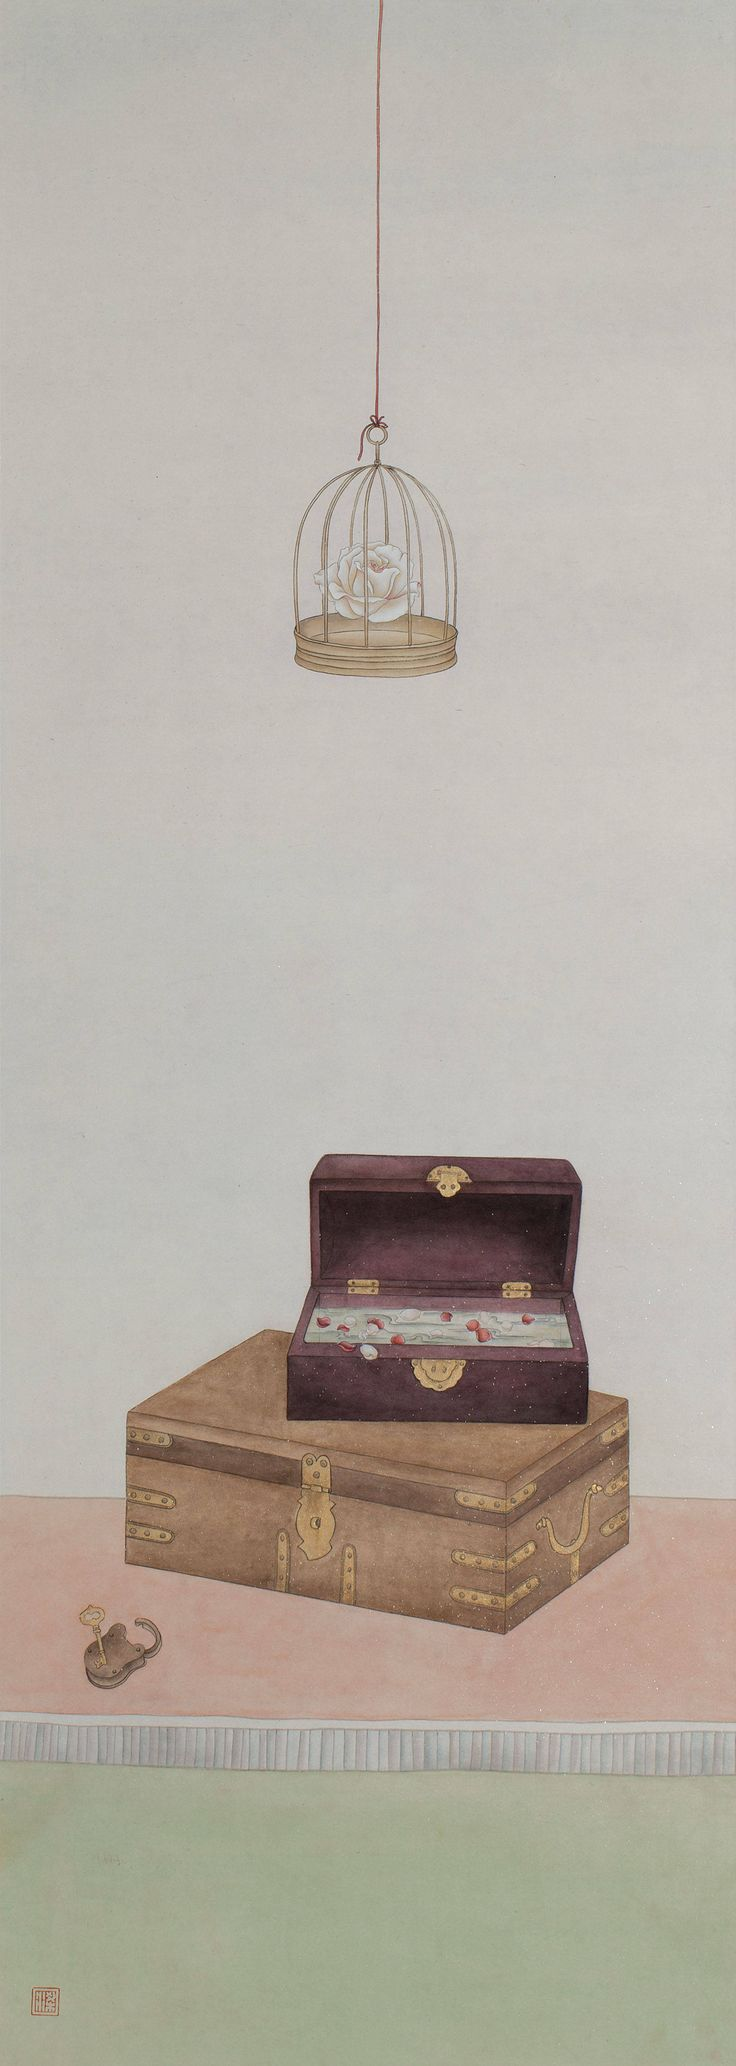 Quotations from Eileen Chang #3 (2012) by Leung Yee Ting; Ink and colour on paper; 120 x 47cm; Artify Gallery